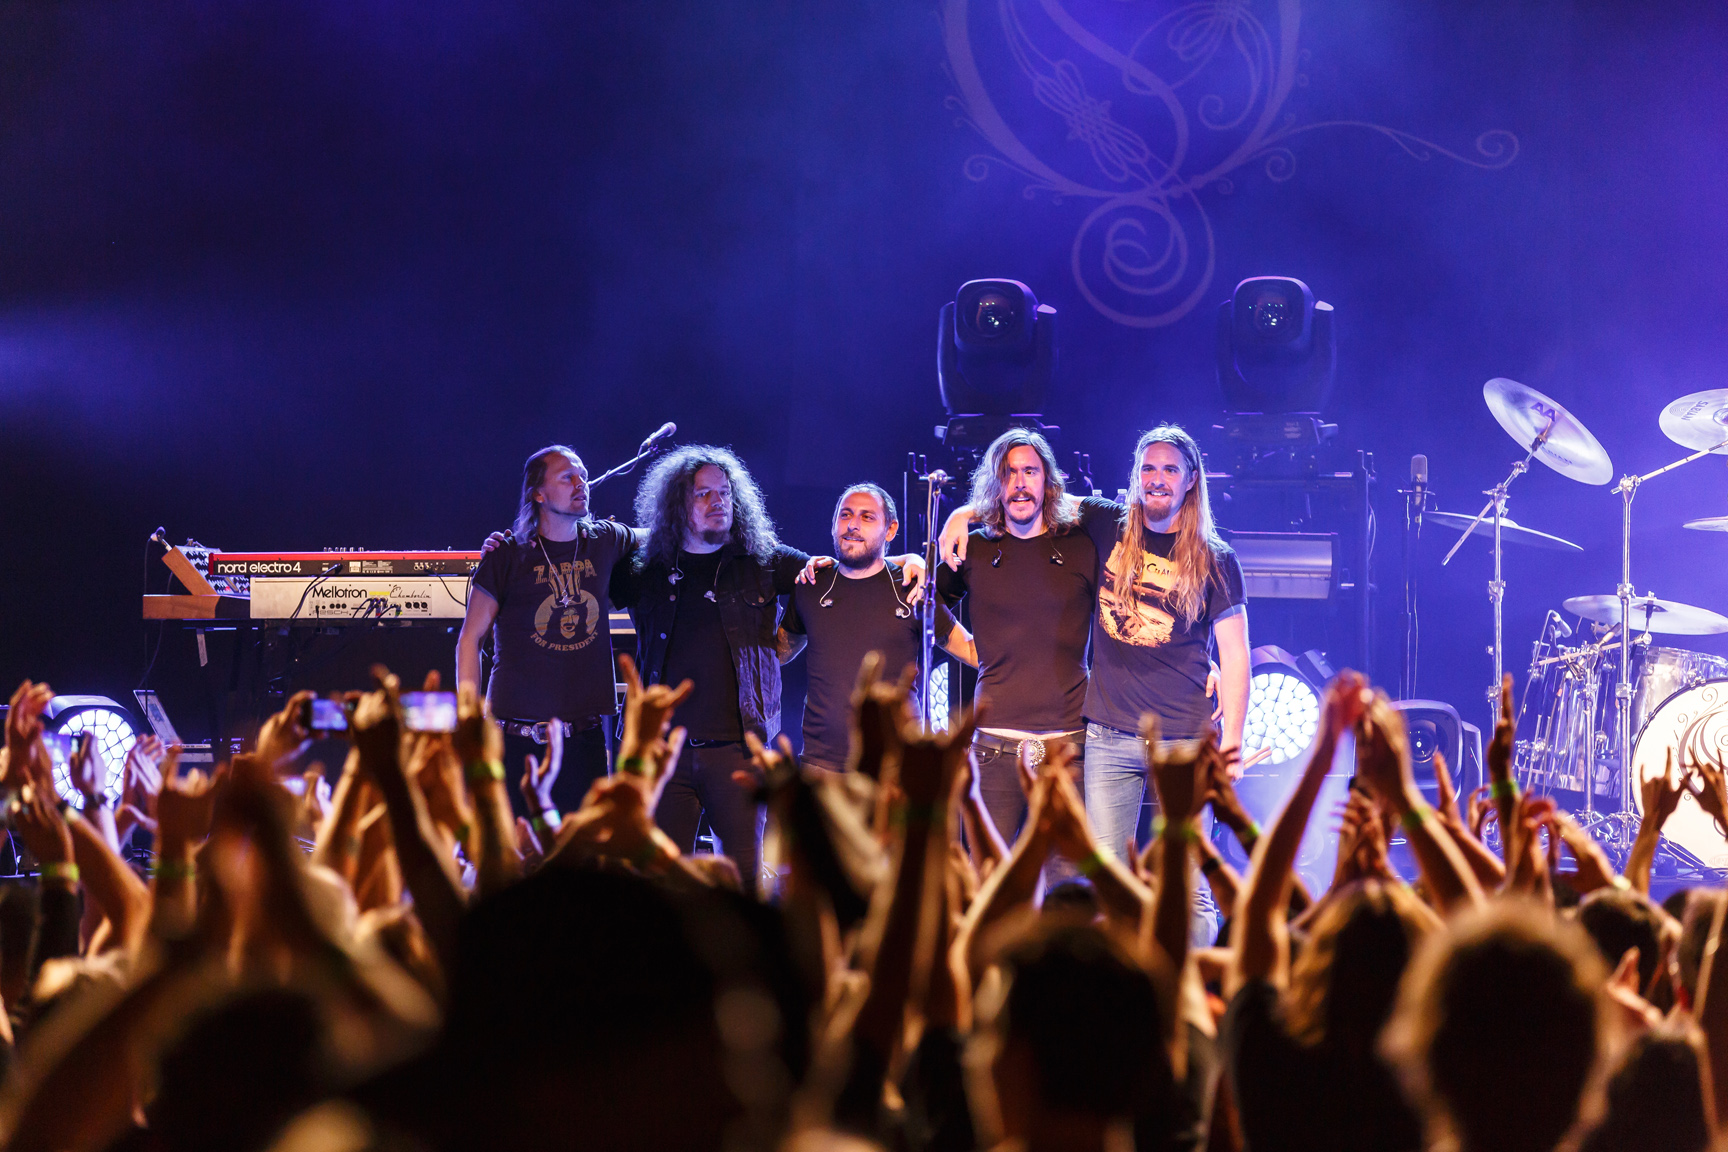 Concert Review: Opeth in Tempe, AZ, 10-19-16